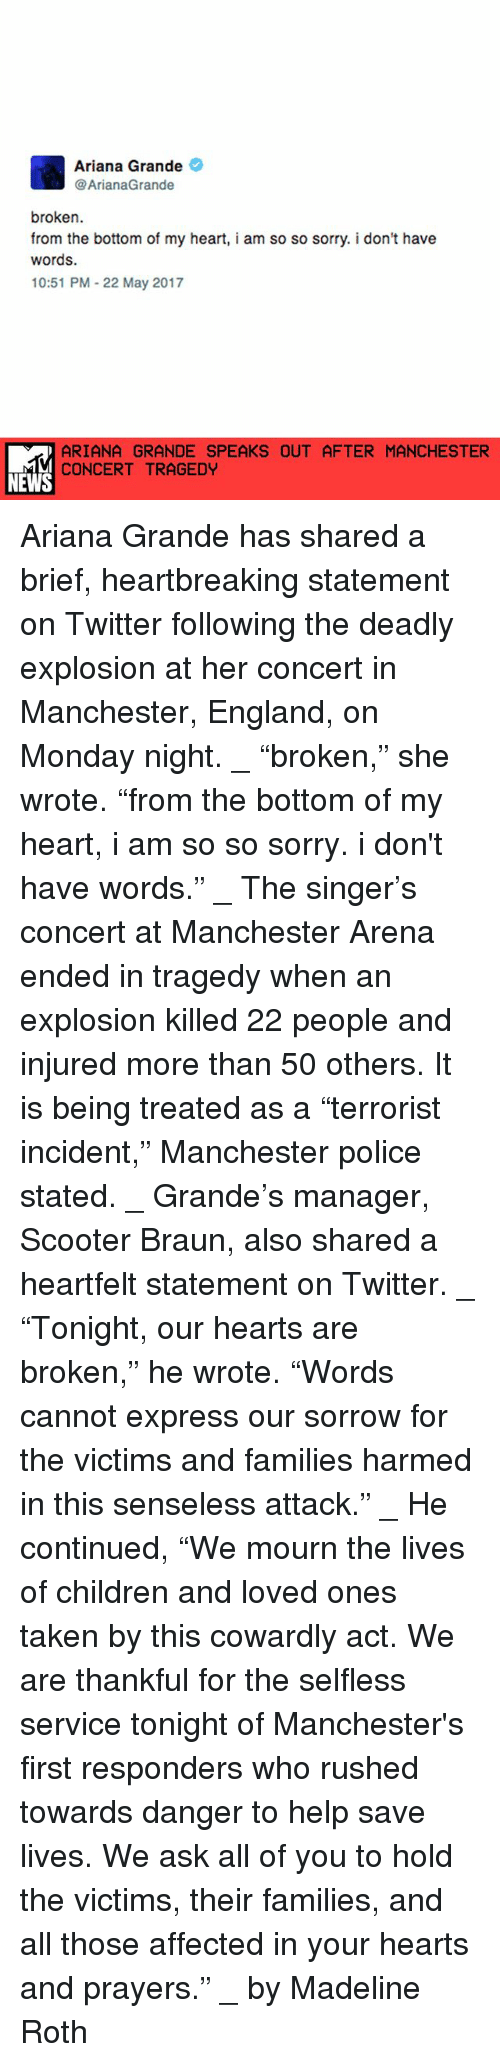 "Heartfeltly: Ariana Grande  @ArianaGrande  broken.  from the bottom of my heart, i am so so sorry. i don't have  words.  10:51 PM 22 May 2017  ARIANA GRANDE SPEAKS OUT AFTER MANCHESTER  CONCERT TRAGEDY  NEWS Ariana Grande has shared a brief, heartbreaking statement on Twitter following the deadly explosion at her concert in Manchester, England, on Monday night. _ ""broken,"" she wrote. ""from the bottom of my heart, i am so so sorry. i don't have words."" _ The singer's concert at Manchester Arena ended in tragedy when an explosion killed 22 people and injured more than 50 others. It is being treated as a ""terrorist incident,"" Manchester police stated. _ Grande's manager, Scooter Braun, also shared a heartfelt statement on Twitter. _ ""Tonight, our hearts are broken,"" he wrote. ""Words cannot express our sorrow for the victims and families harmed in this senseless attack."" _ He continued, ""We mourn the lives of children and loved ones taken by this cowardly act. We are thankful for the selfless service tonight of Manchester's first responders who rushed towards danger to help save lives. We ask all of you to hold the victims, their families, and all those affected in your hearts and prayers."" _ by Madeline Roth"